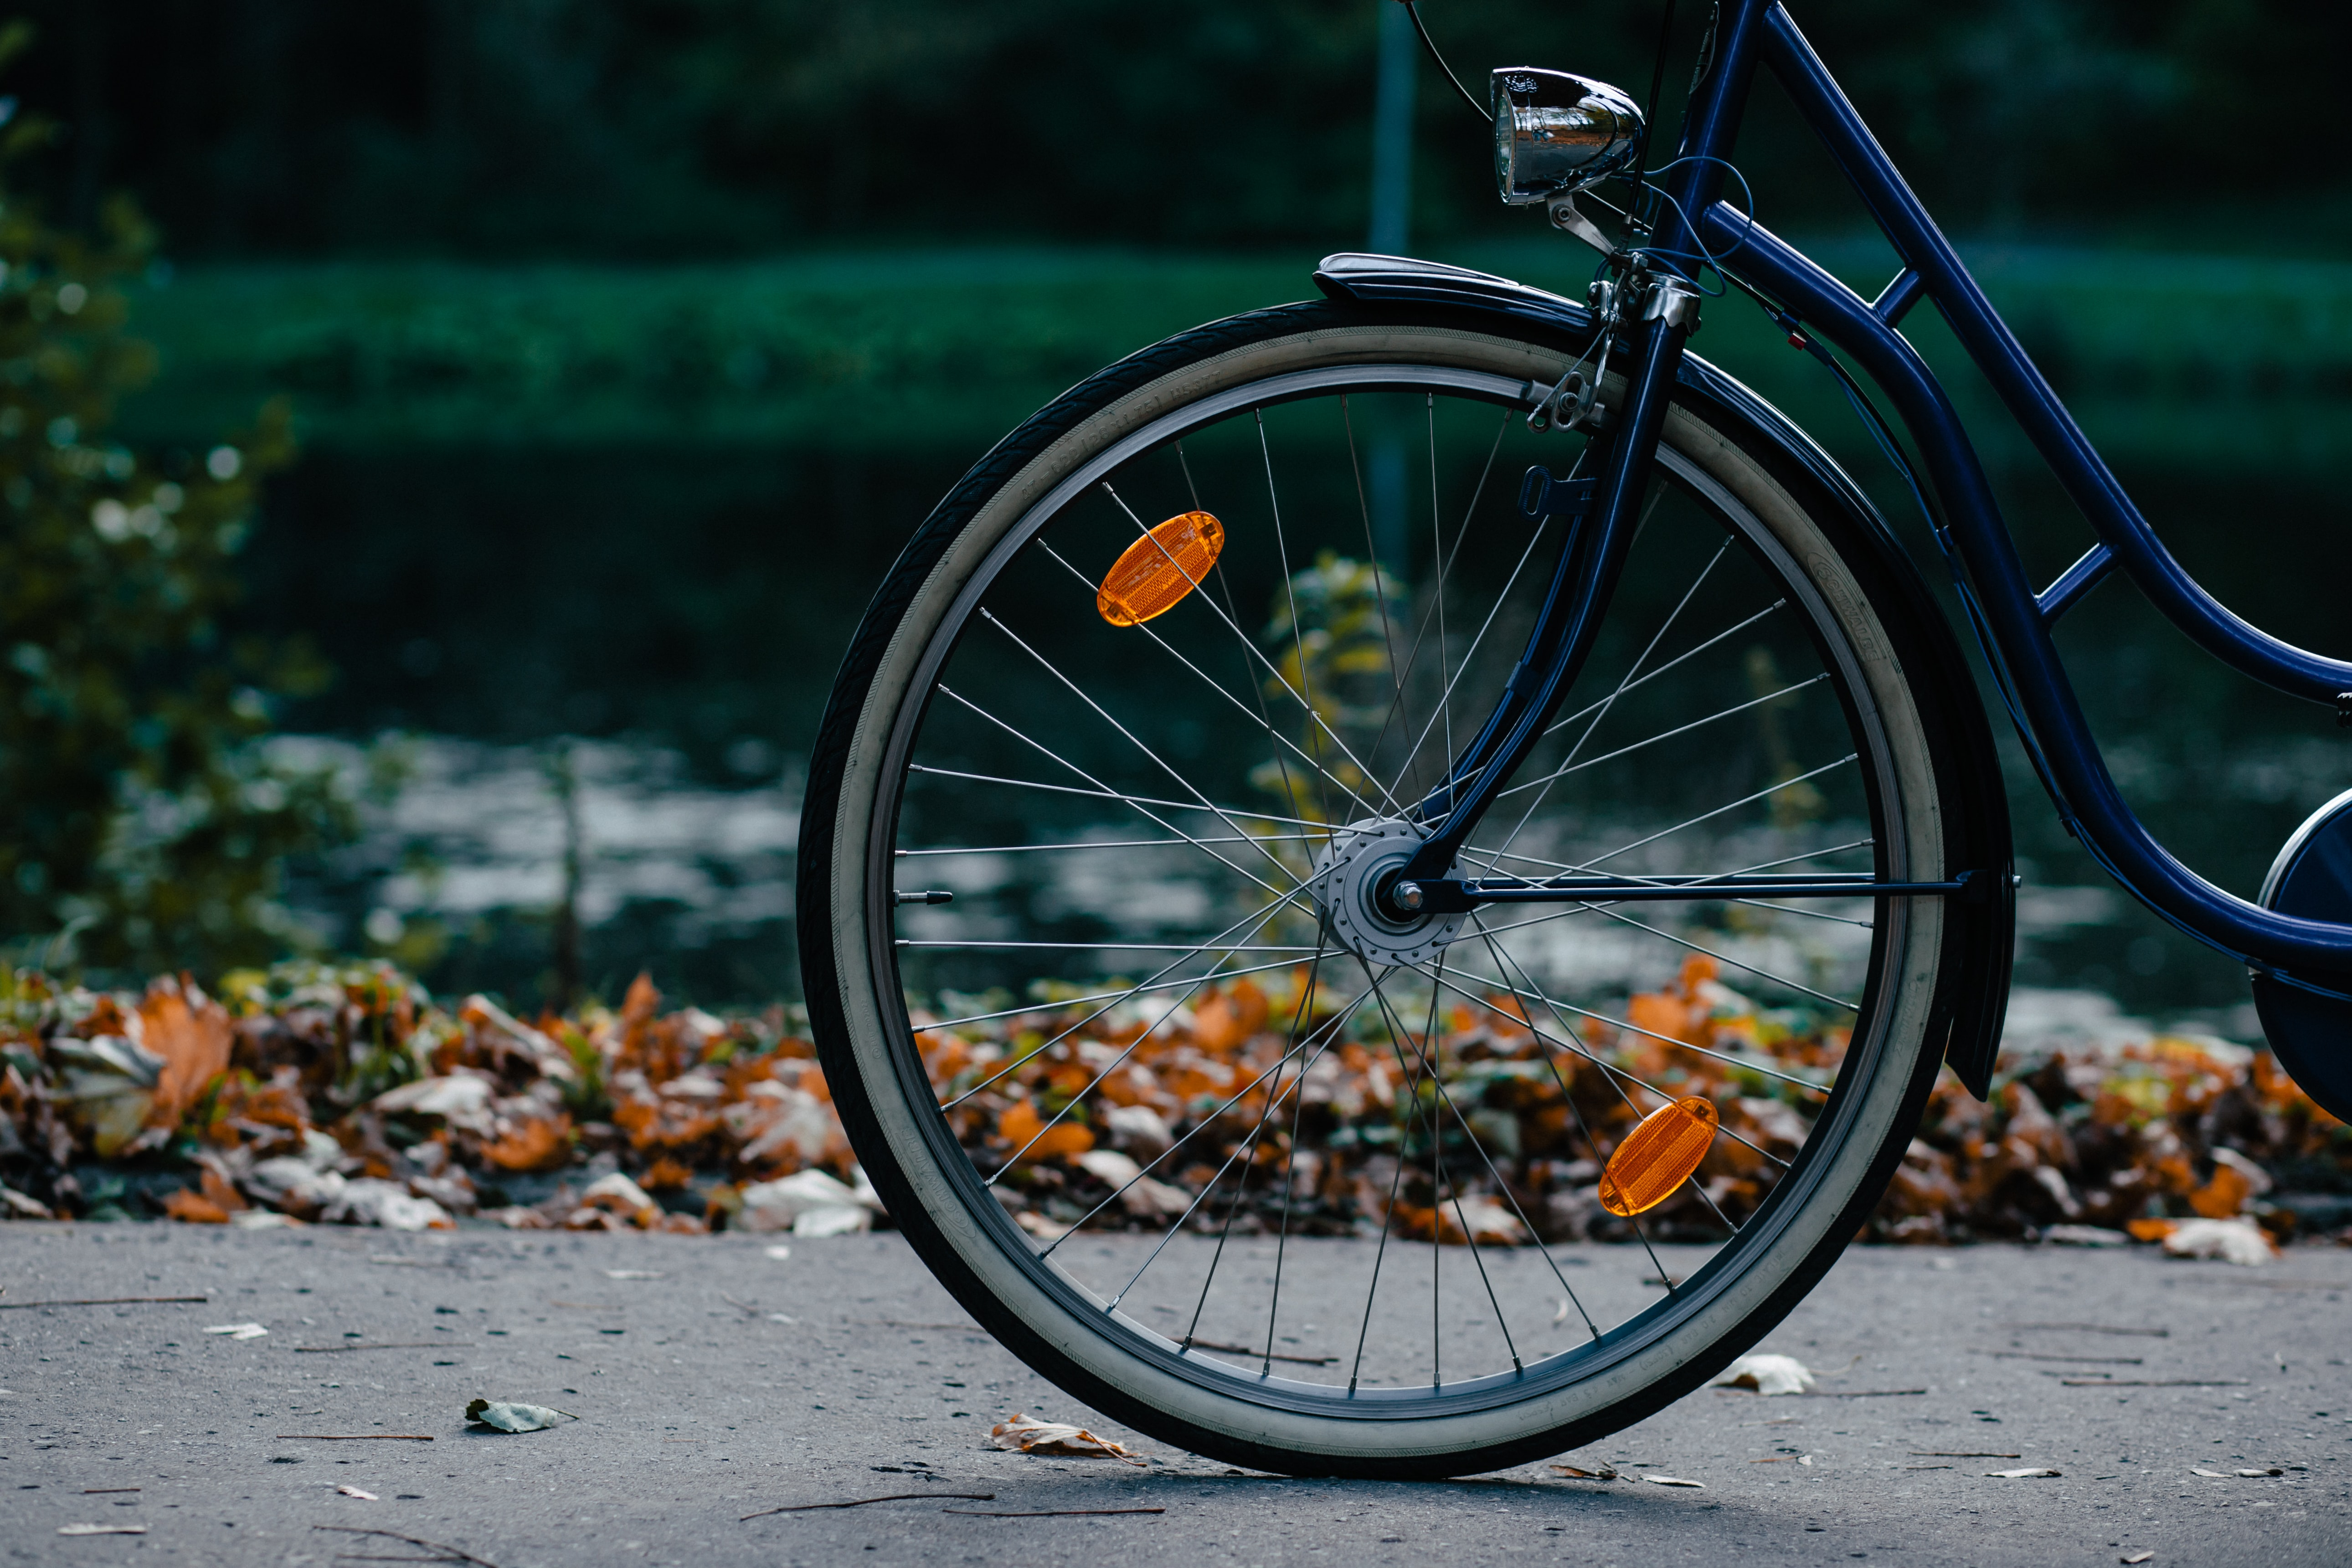 Front half of a navy blue bicycle with wheel and spokes on a sidewalk near leaves